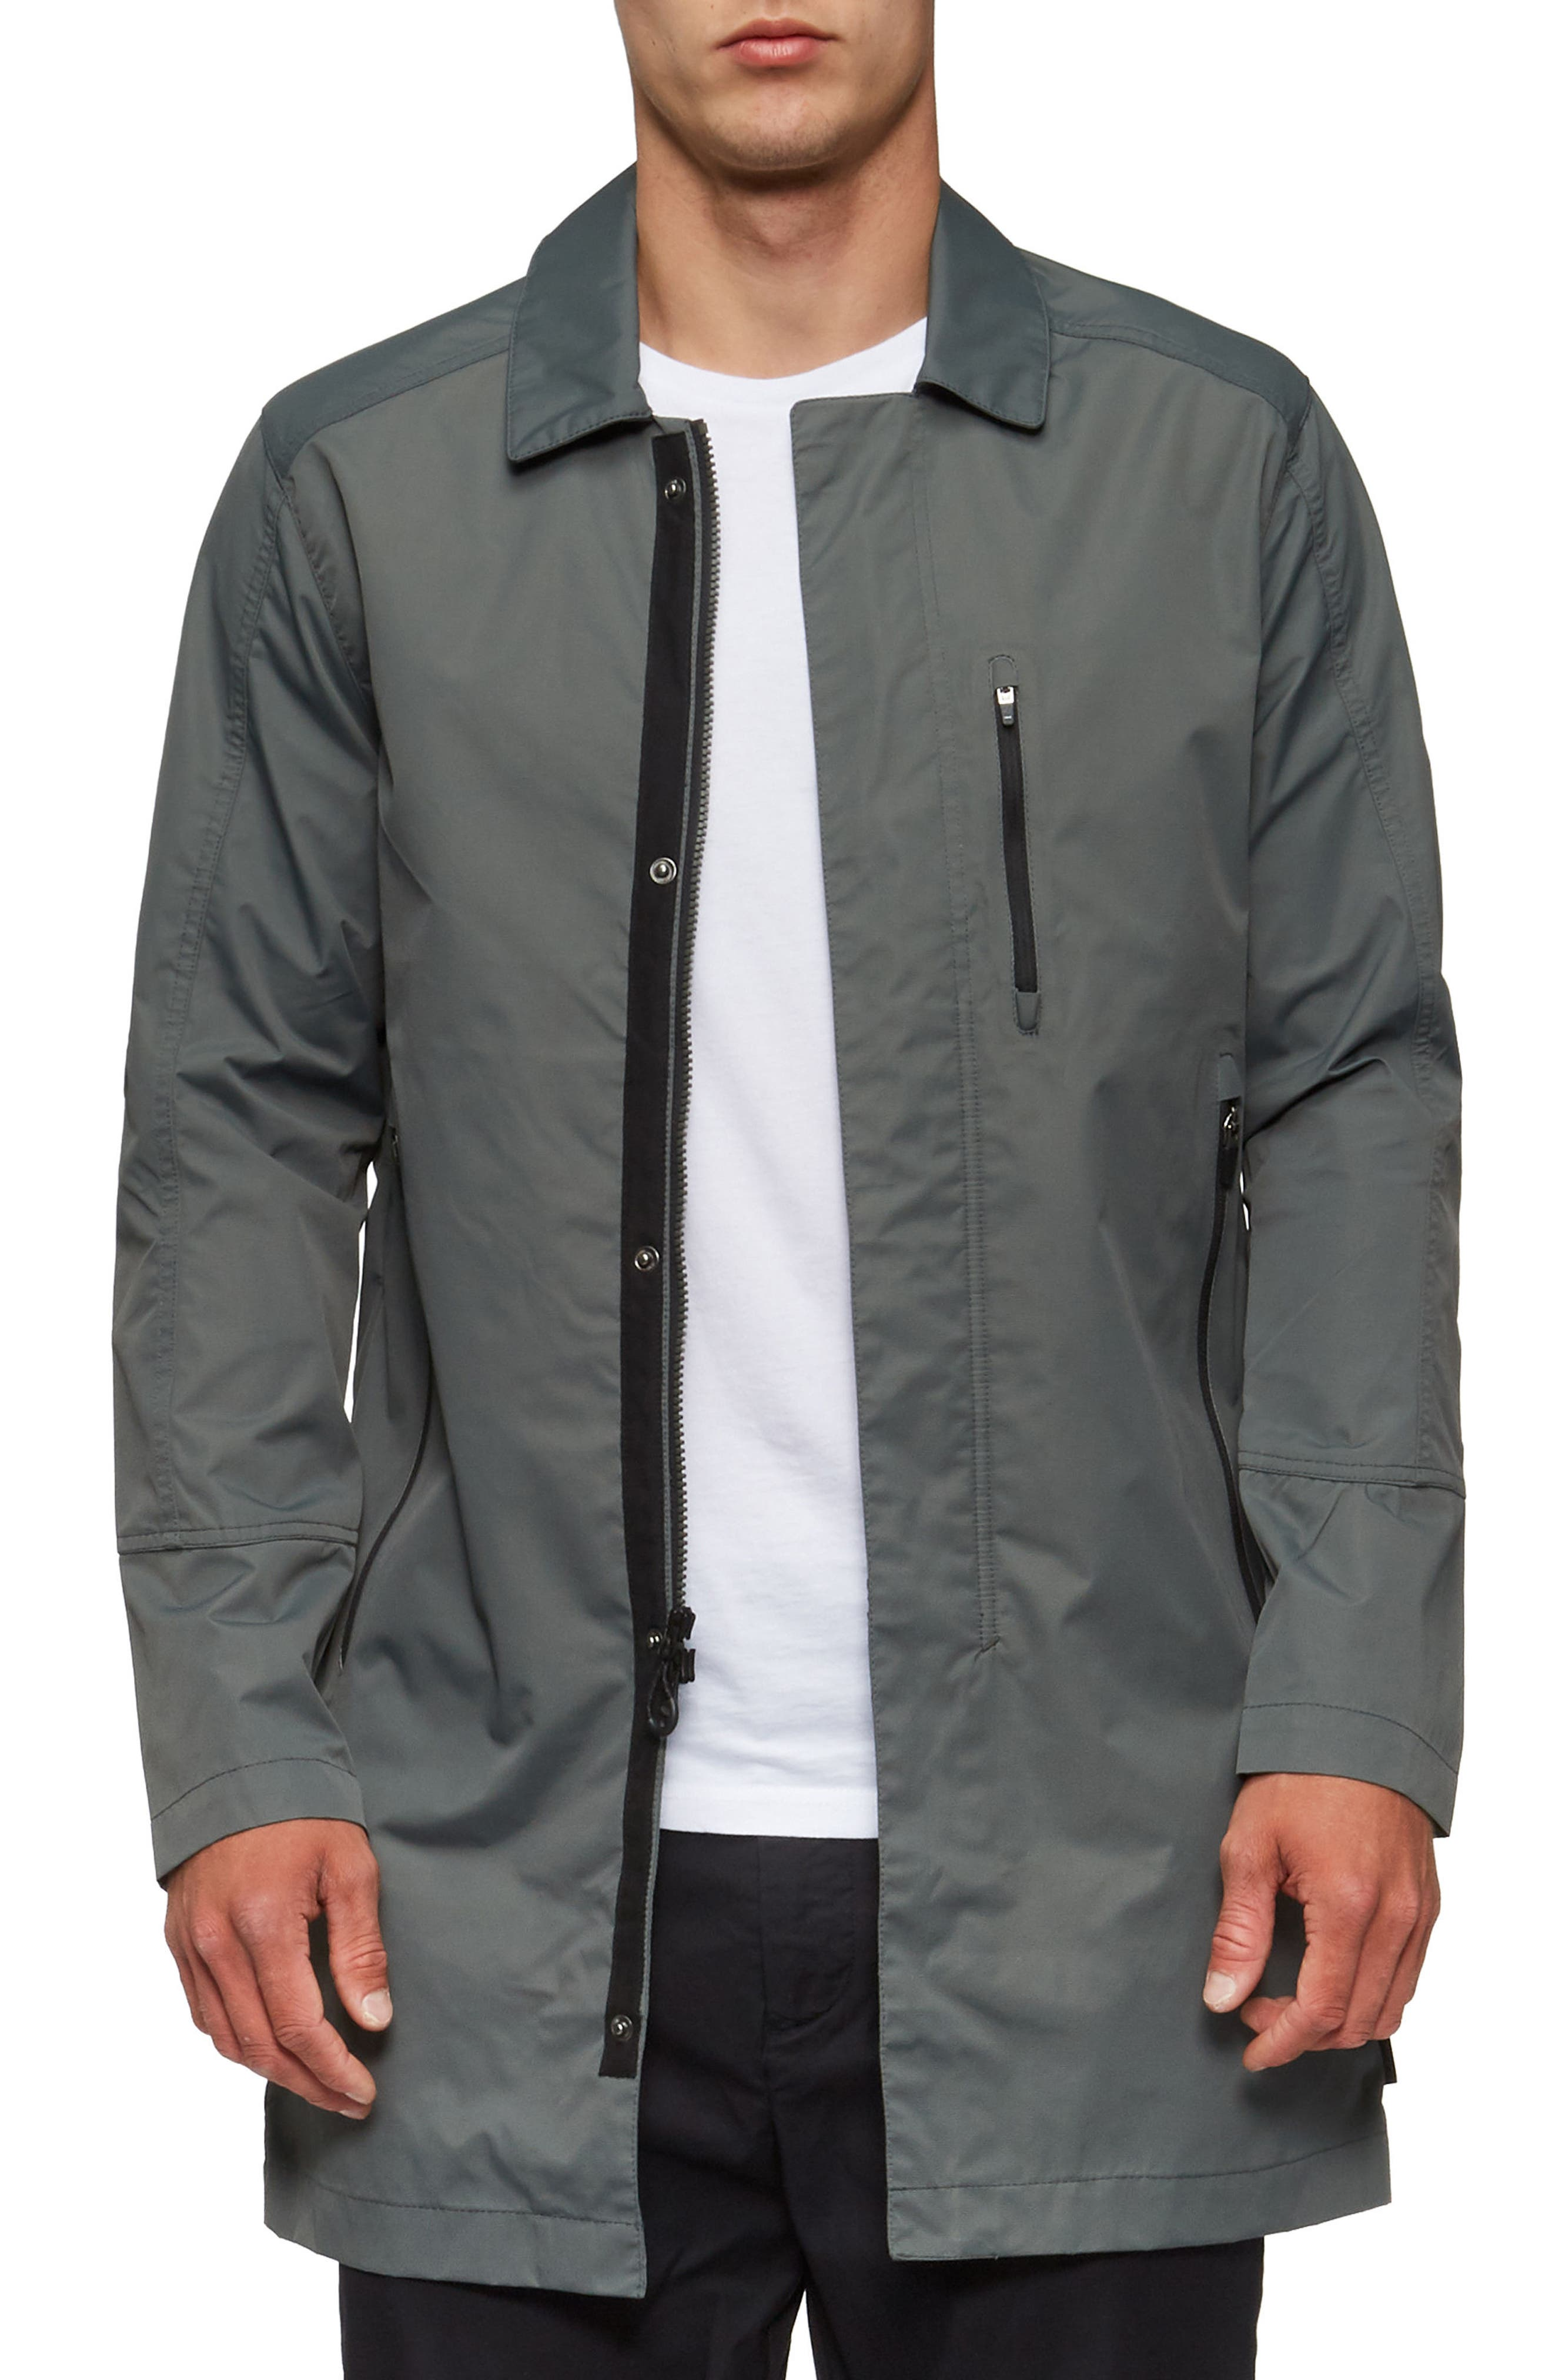 Deckard Weather Resistant Trench Coat,                             Alternate thumbnail 4, color,                             307